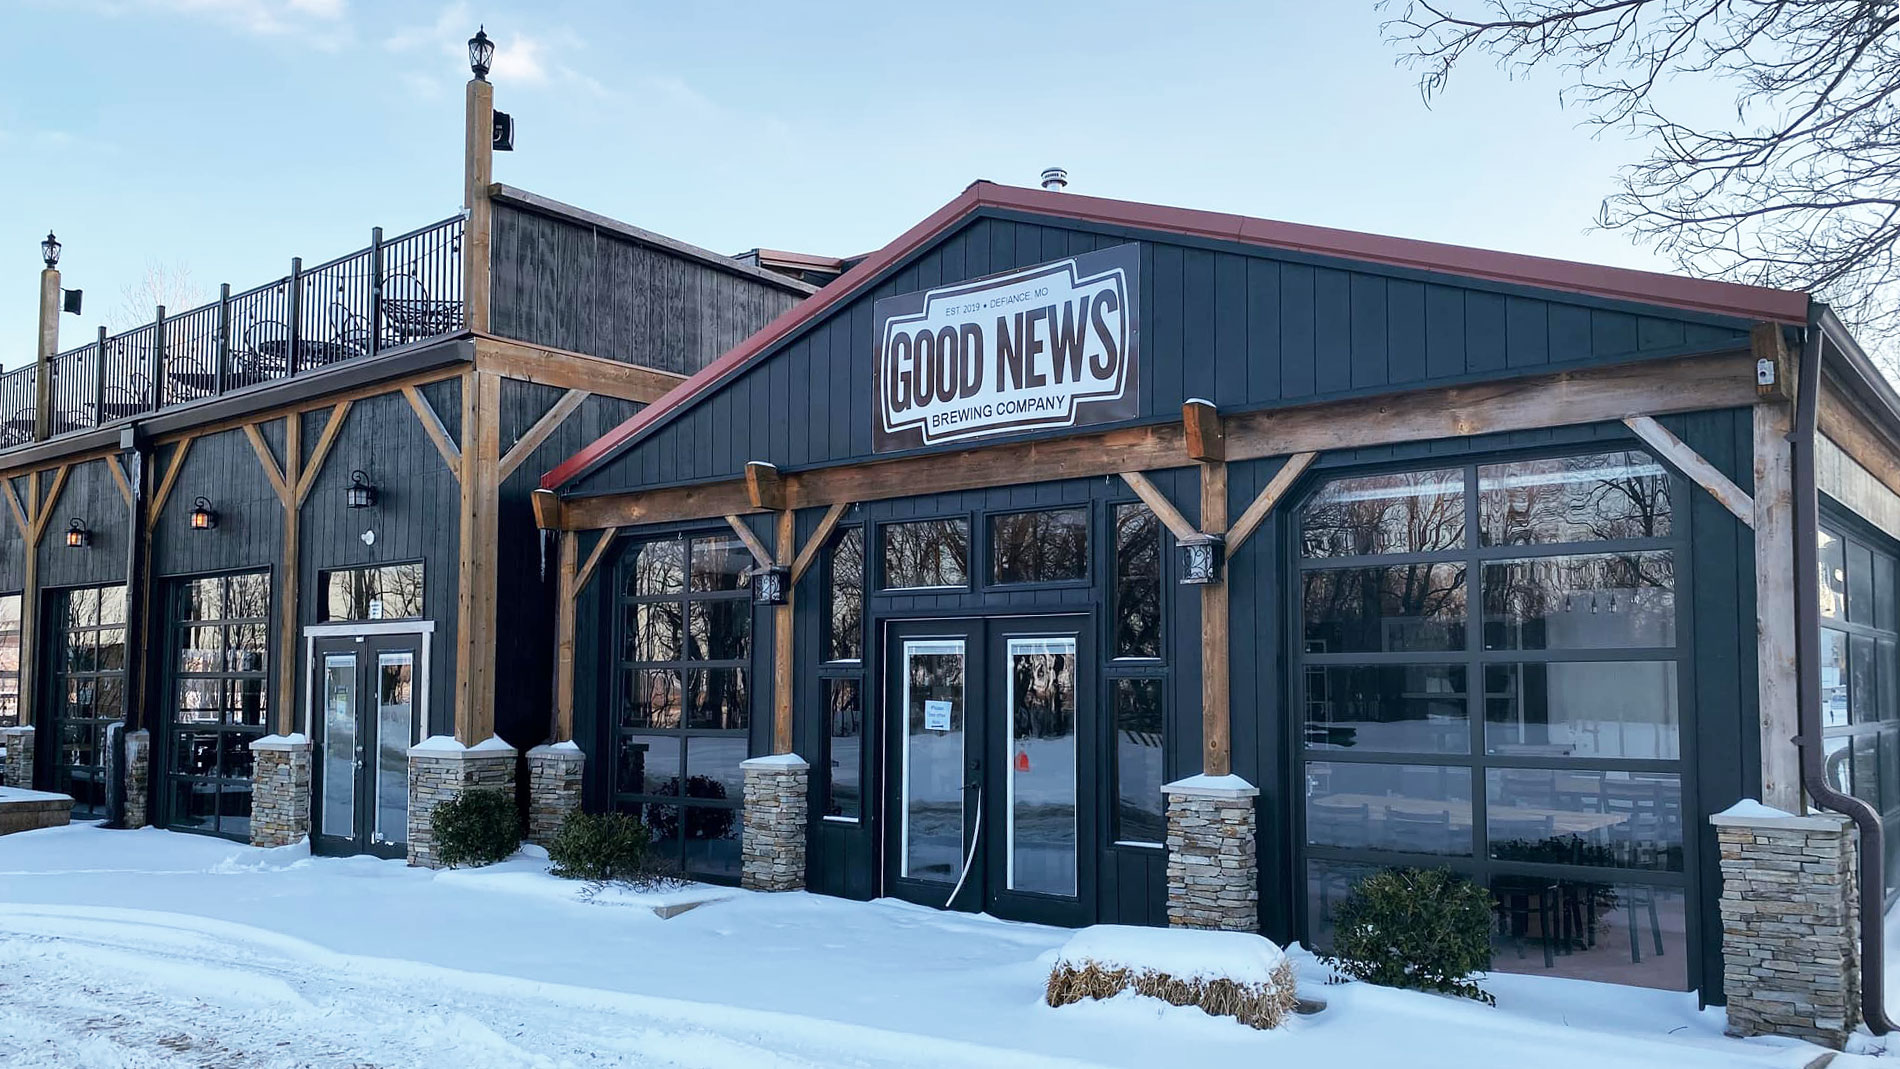 Good News Brewing Co. in defiance, missouri